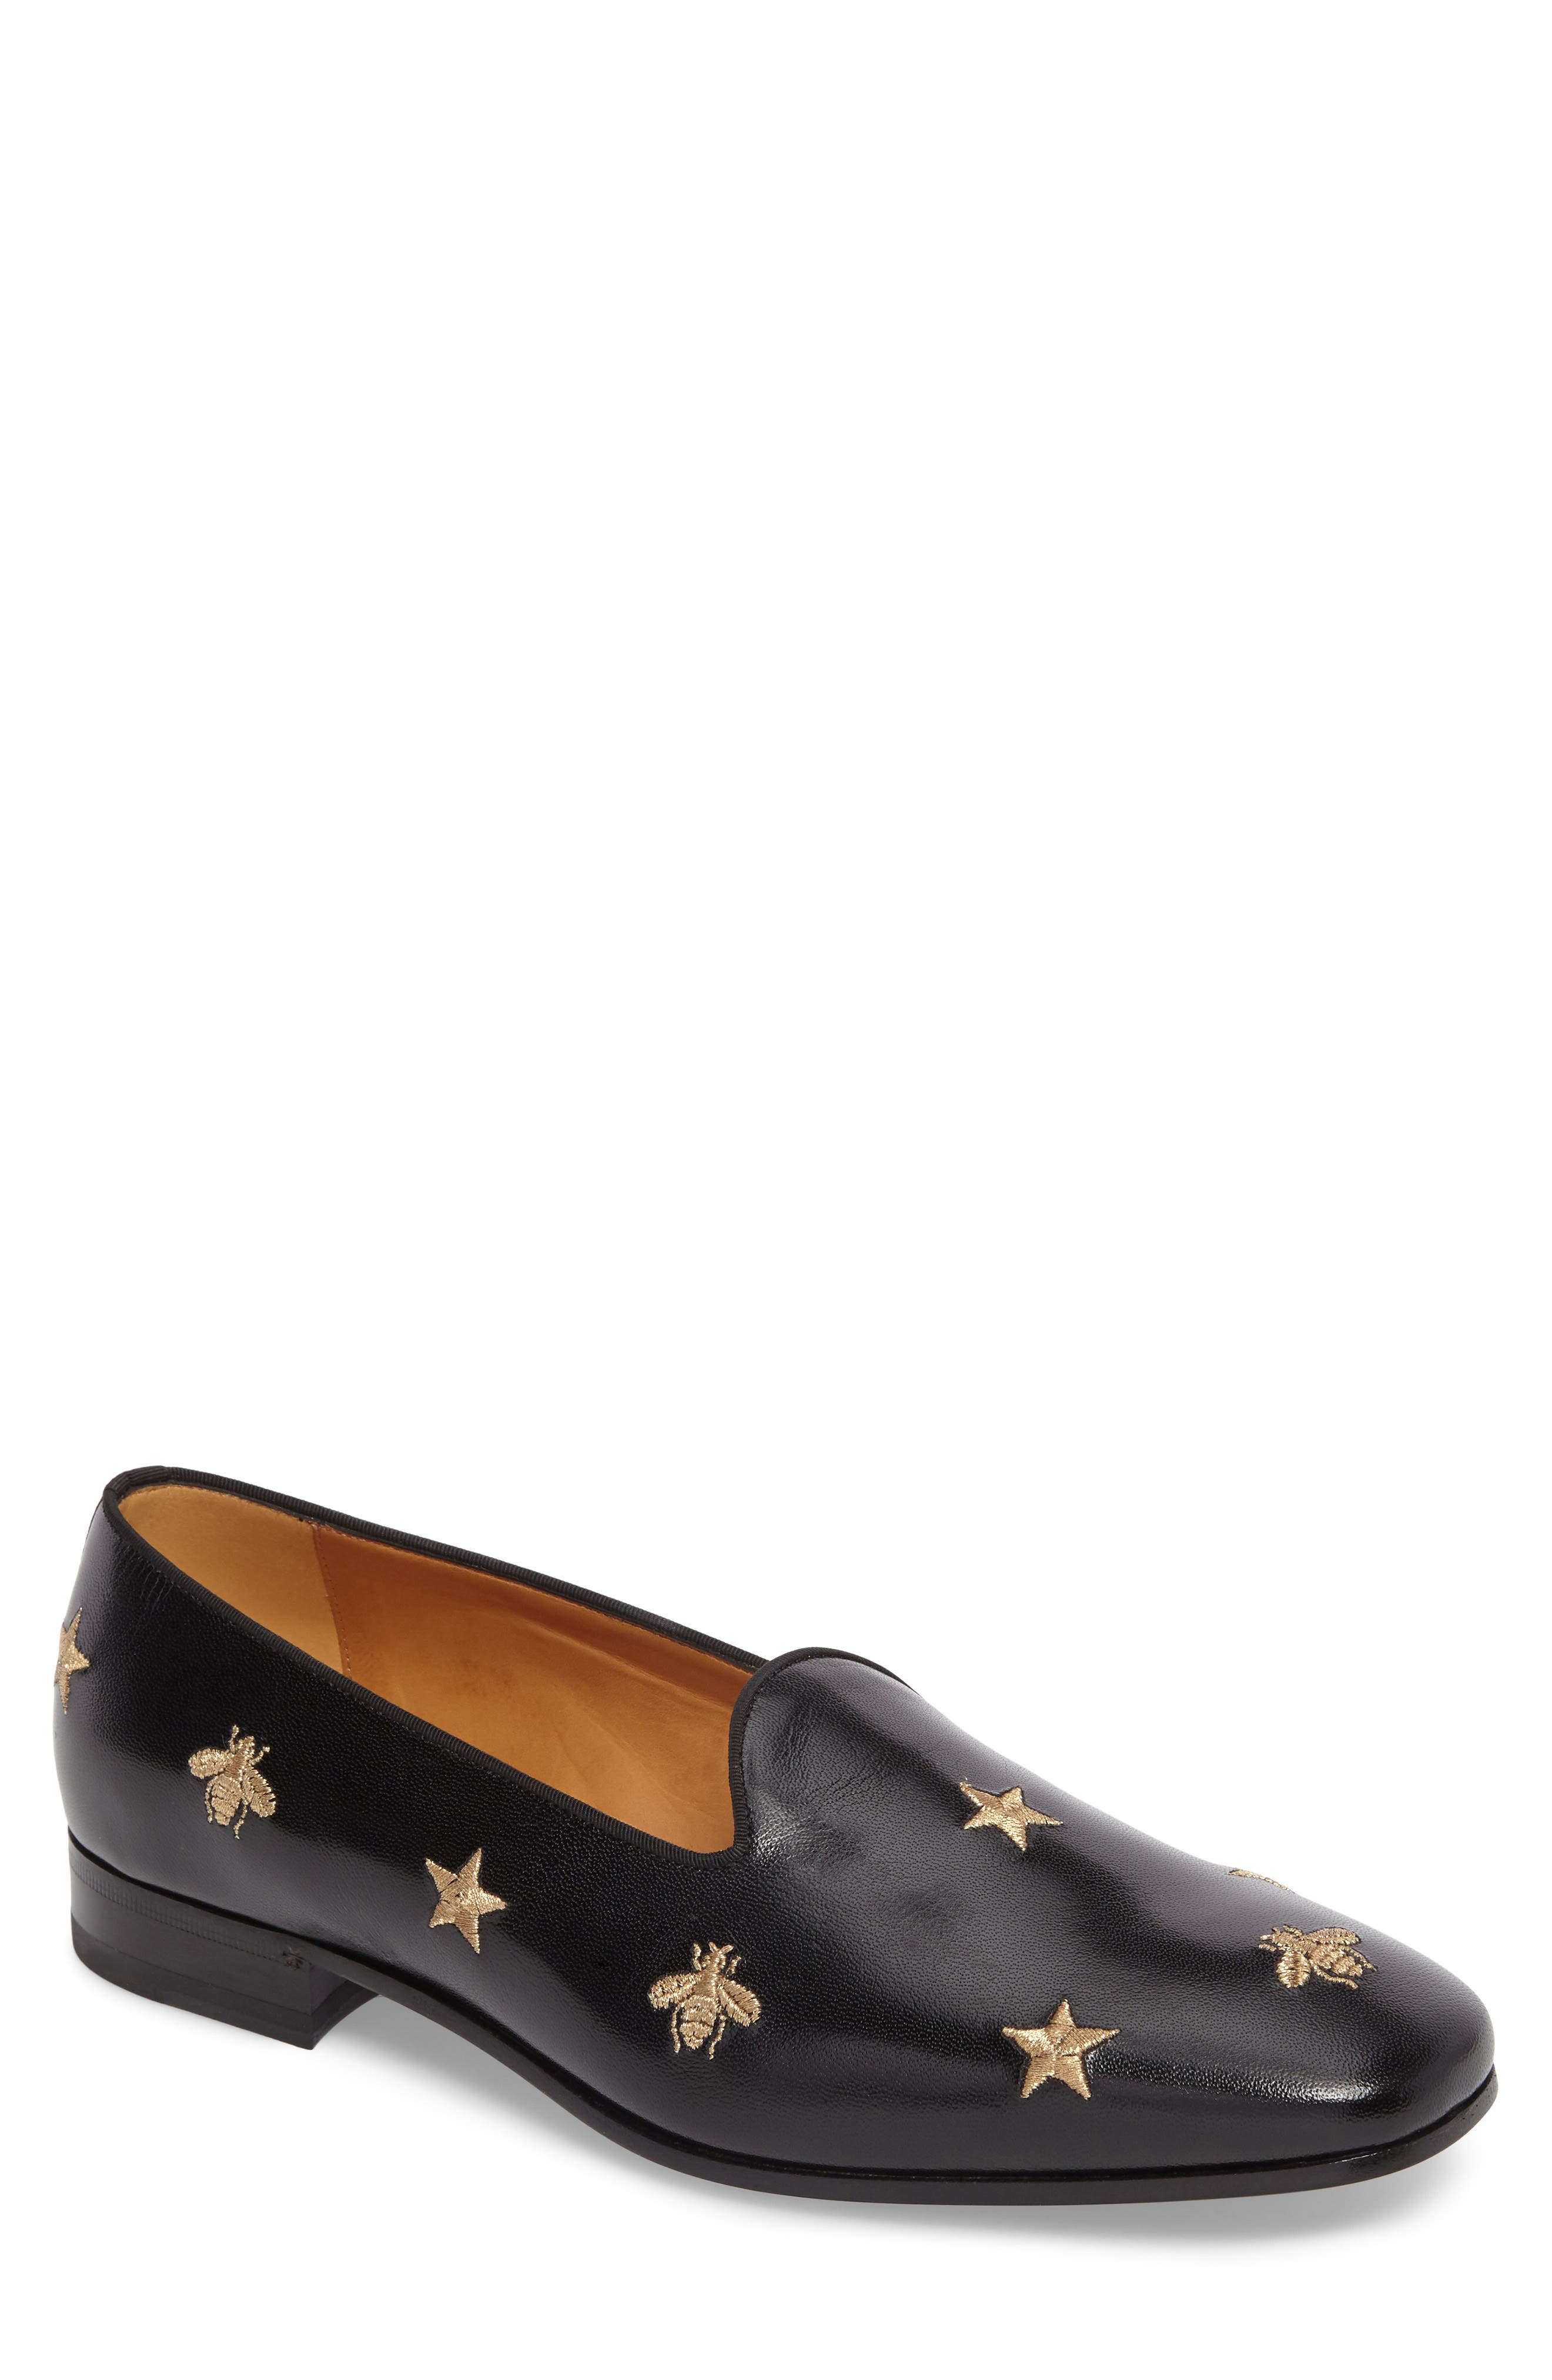 Embroidered Leather Loafer,                             Main thumbnail 1, color,